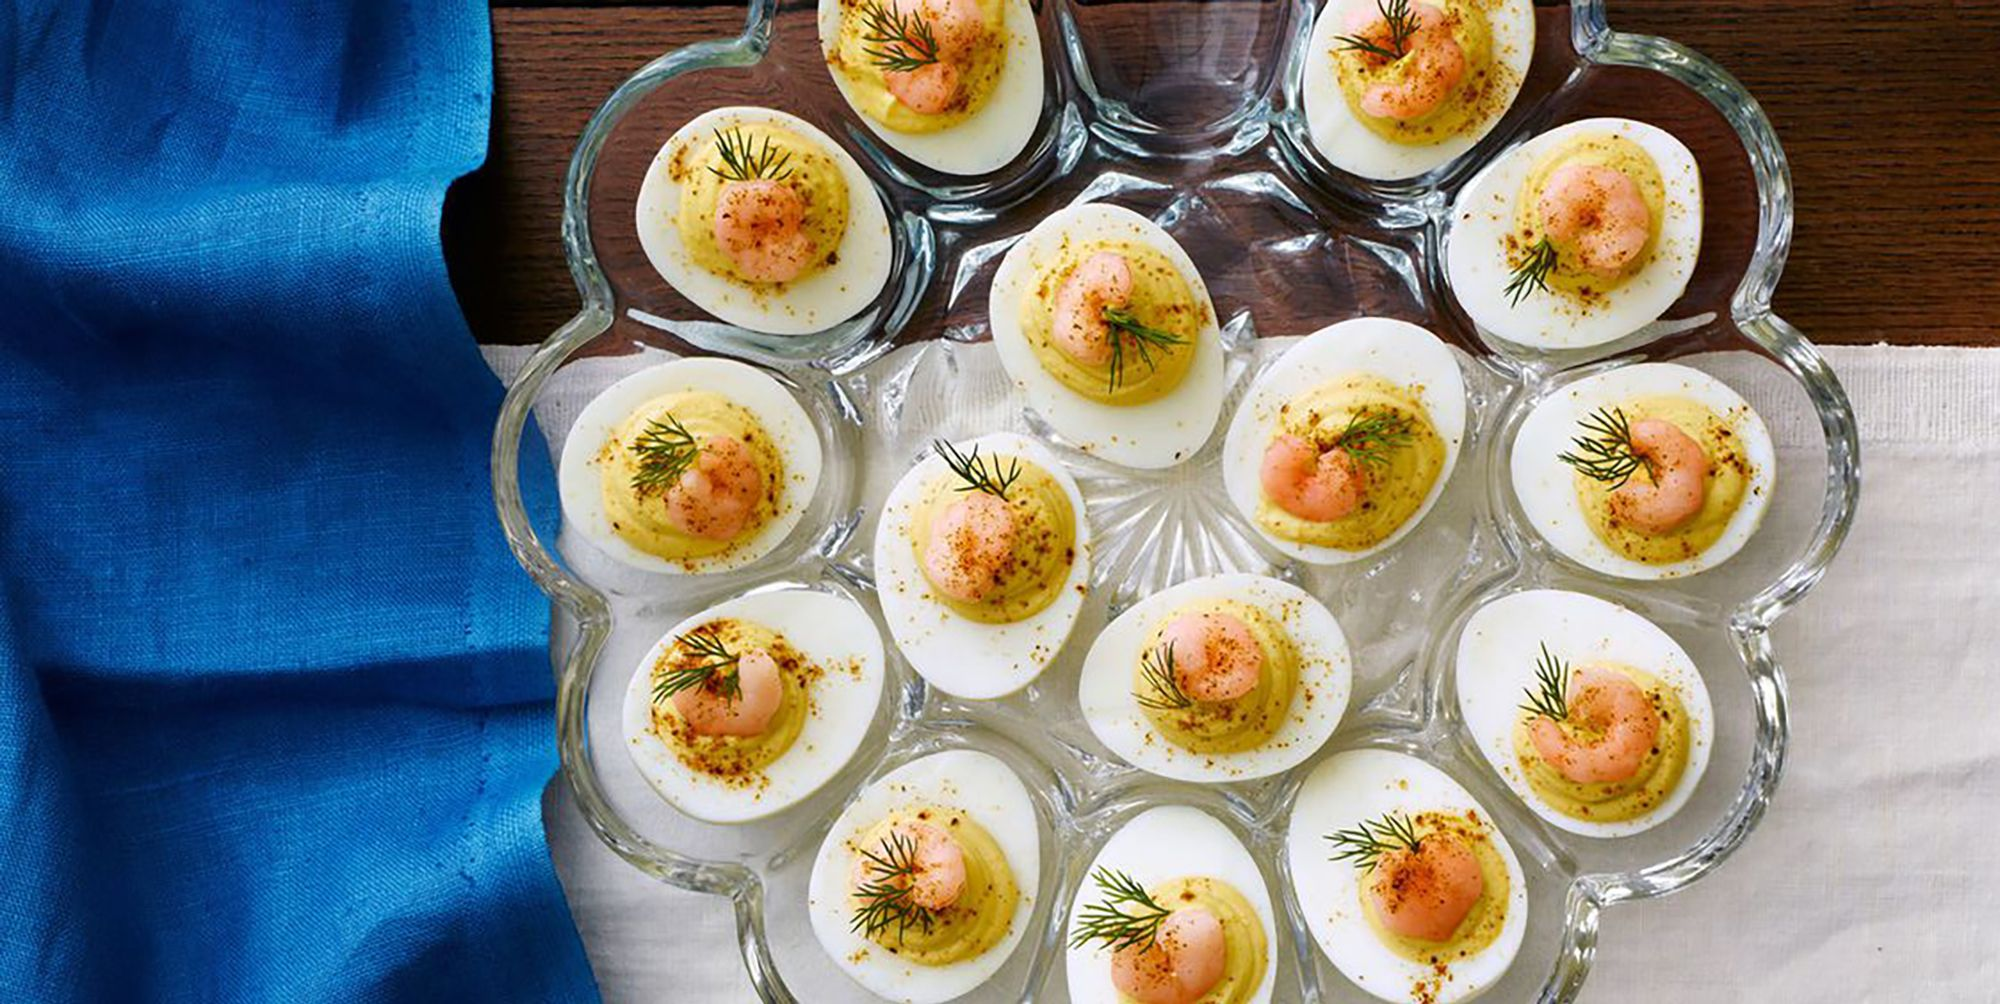 best hard boiled eggs 22 best boiled egg recipes ideas for leftover 13388